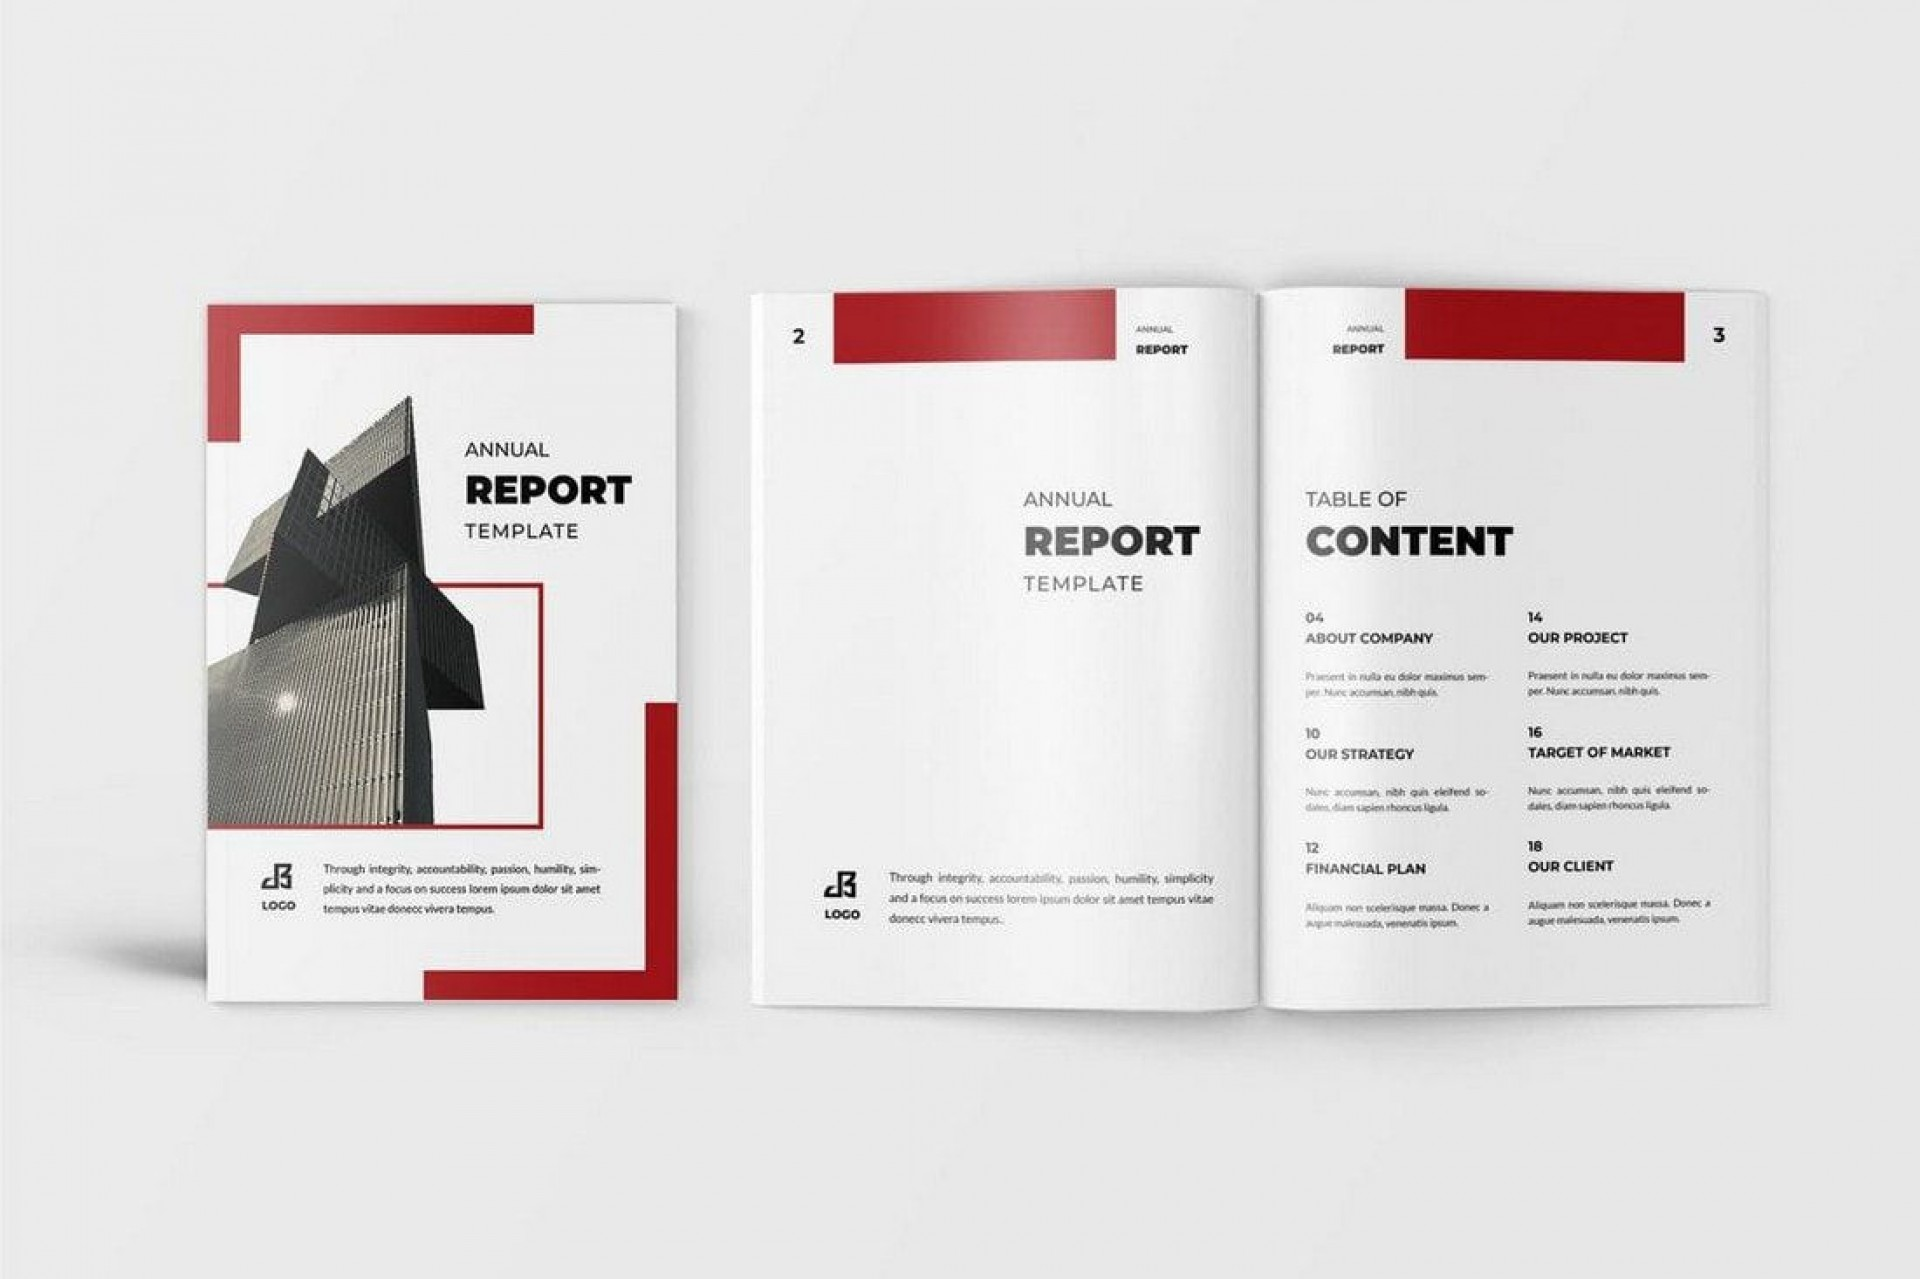 009 Amazing Free Indesign Annual Report Template Download Inspiration 1920